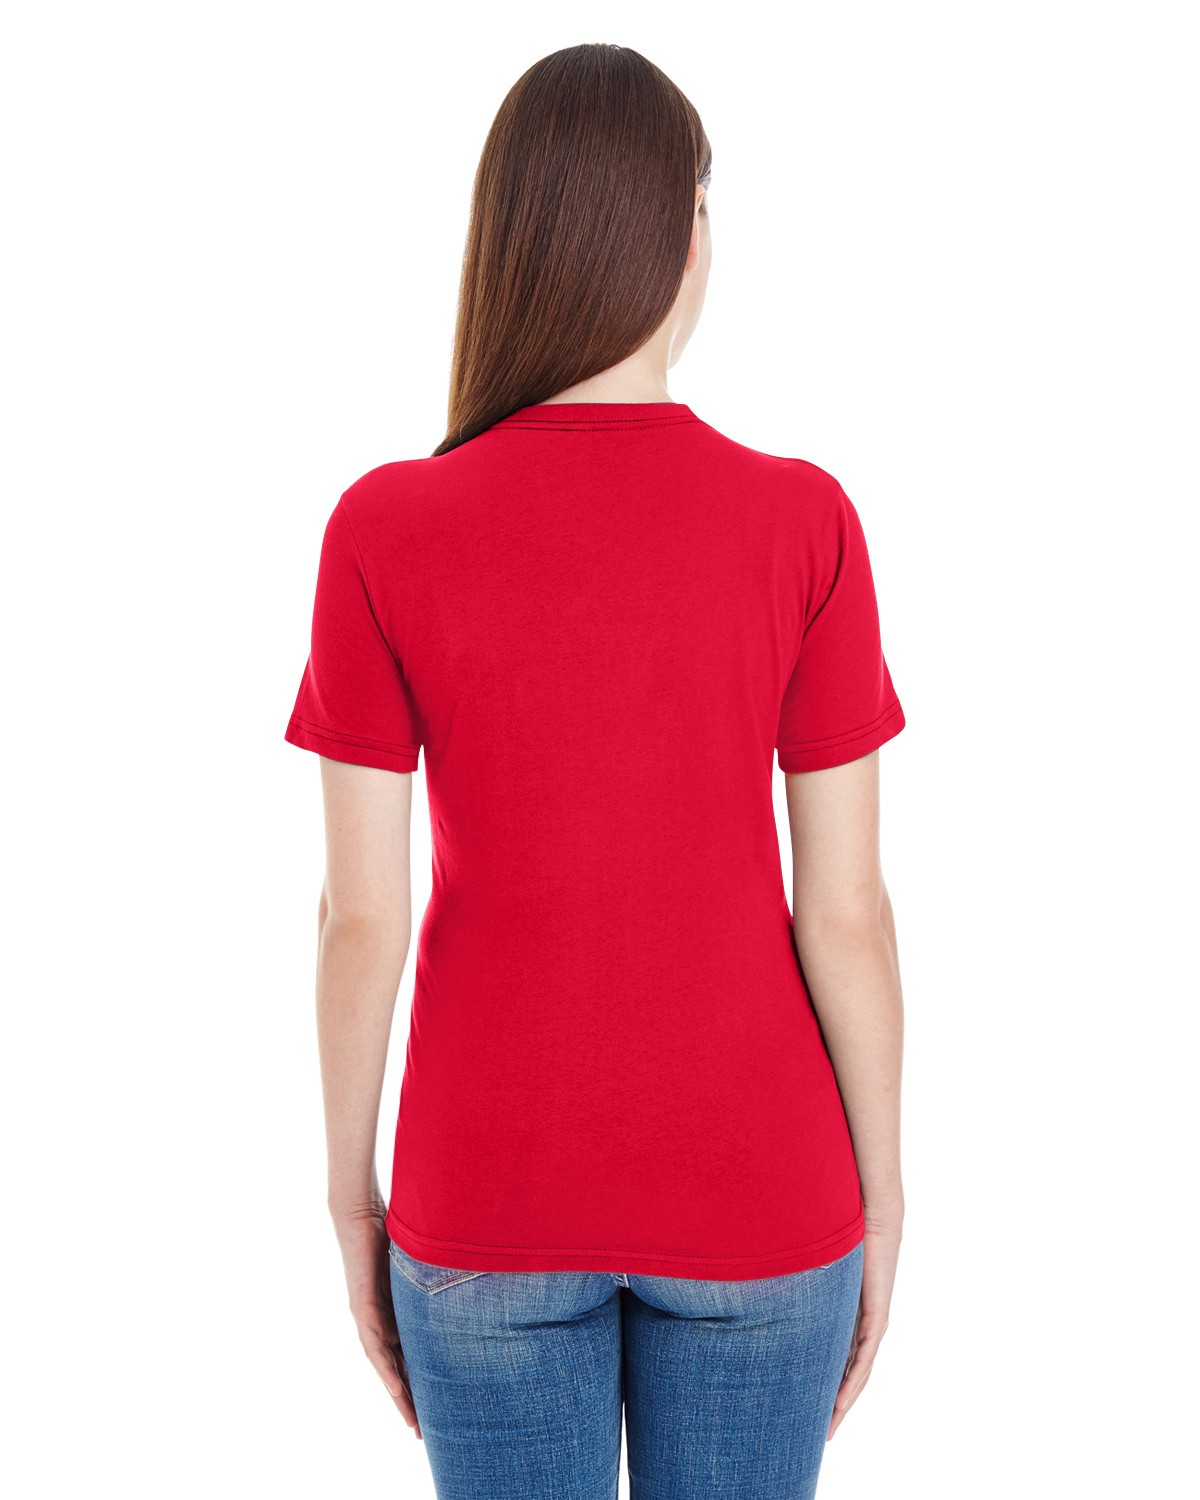 2356W American Apparel RED